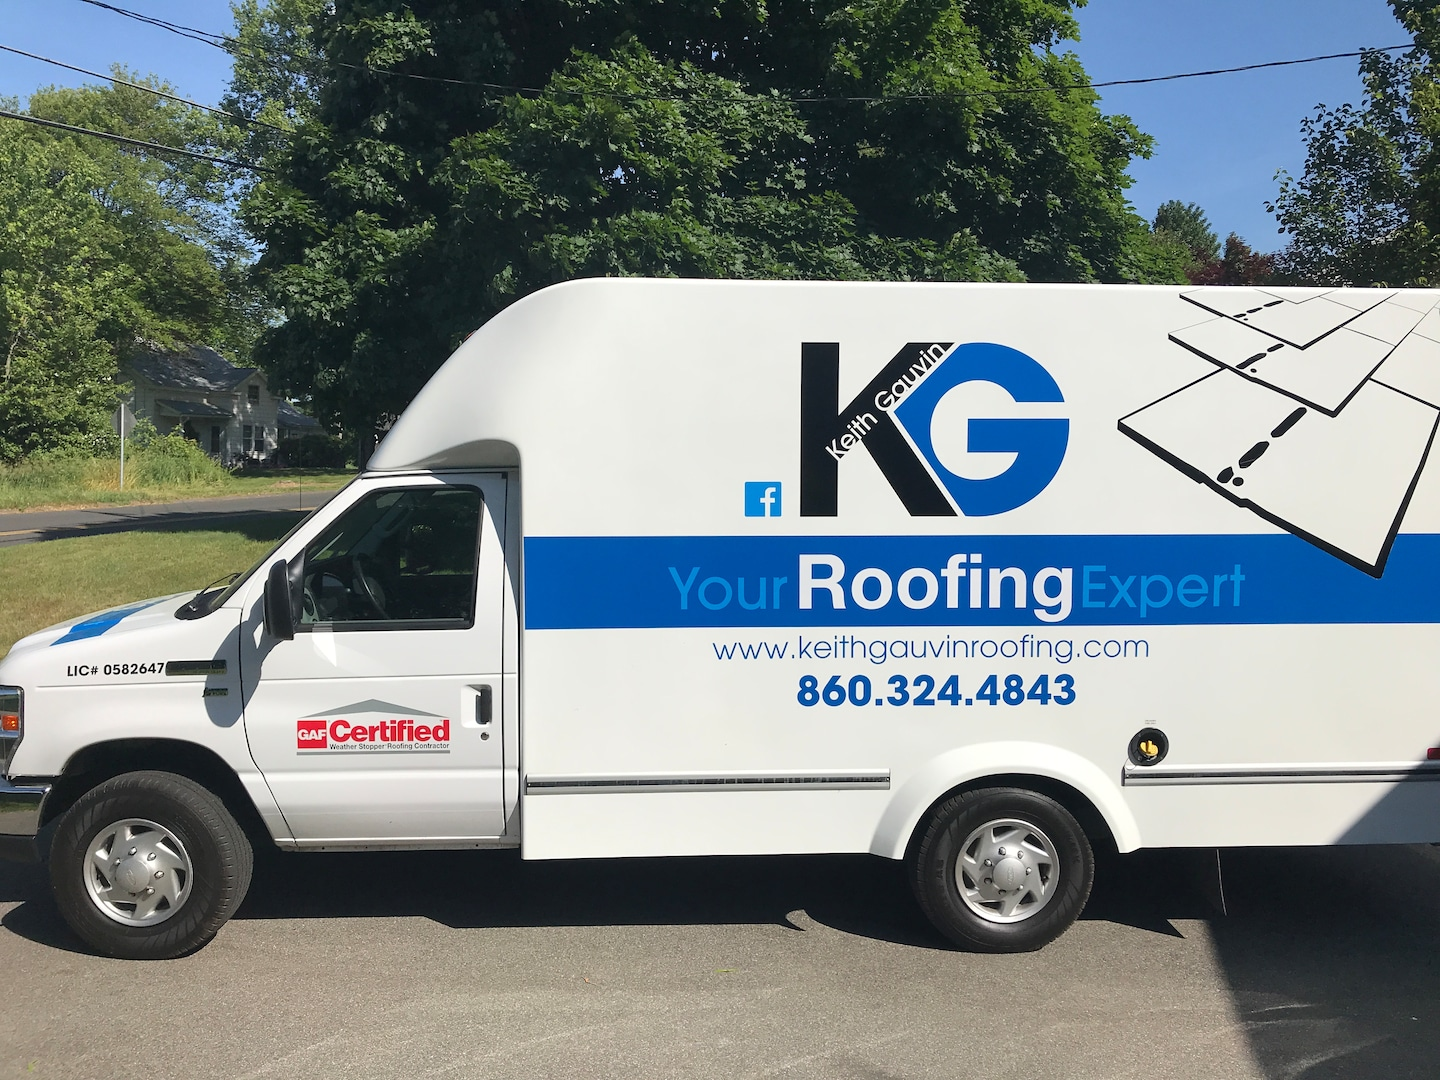 Keith Gauvin Roofing llc